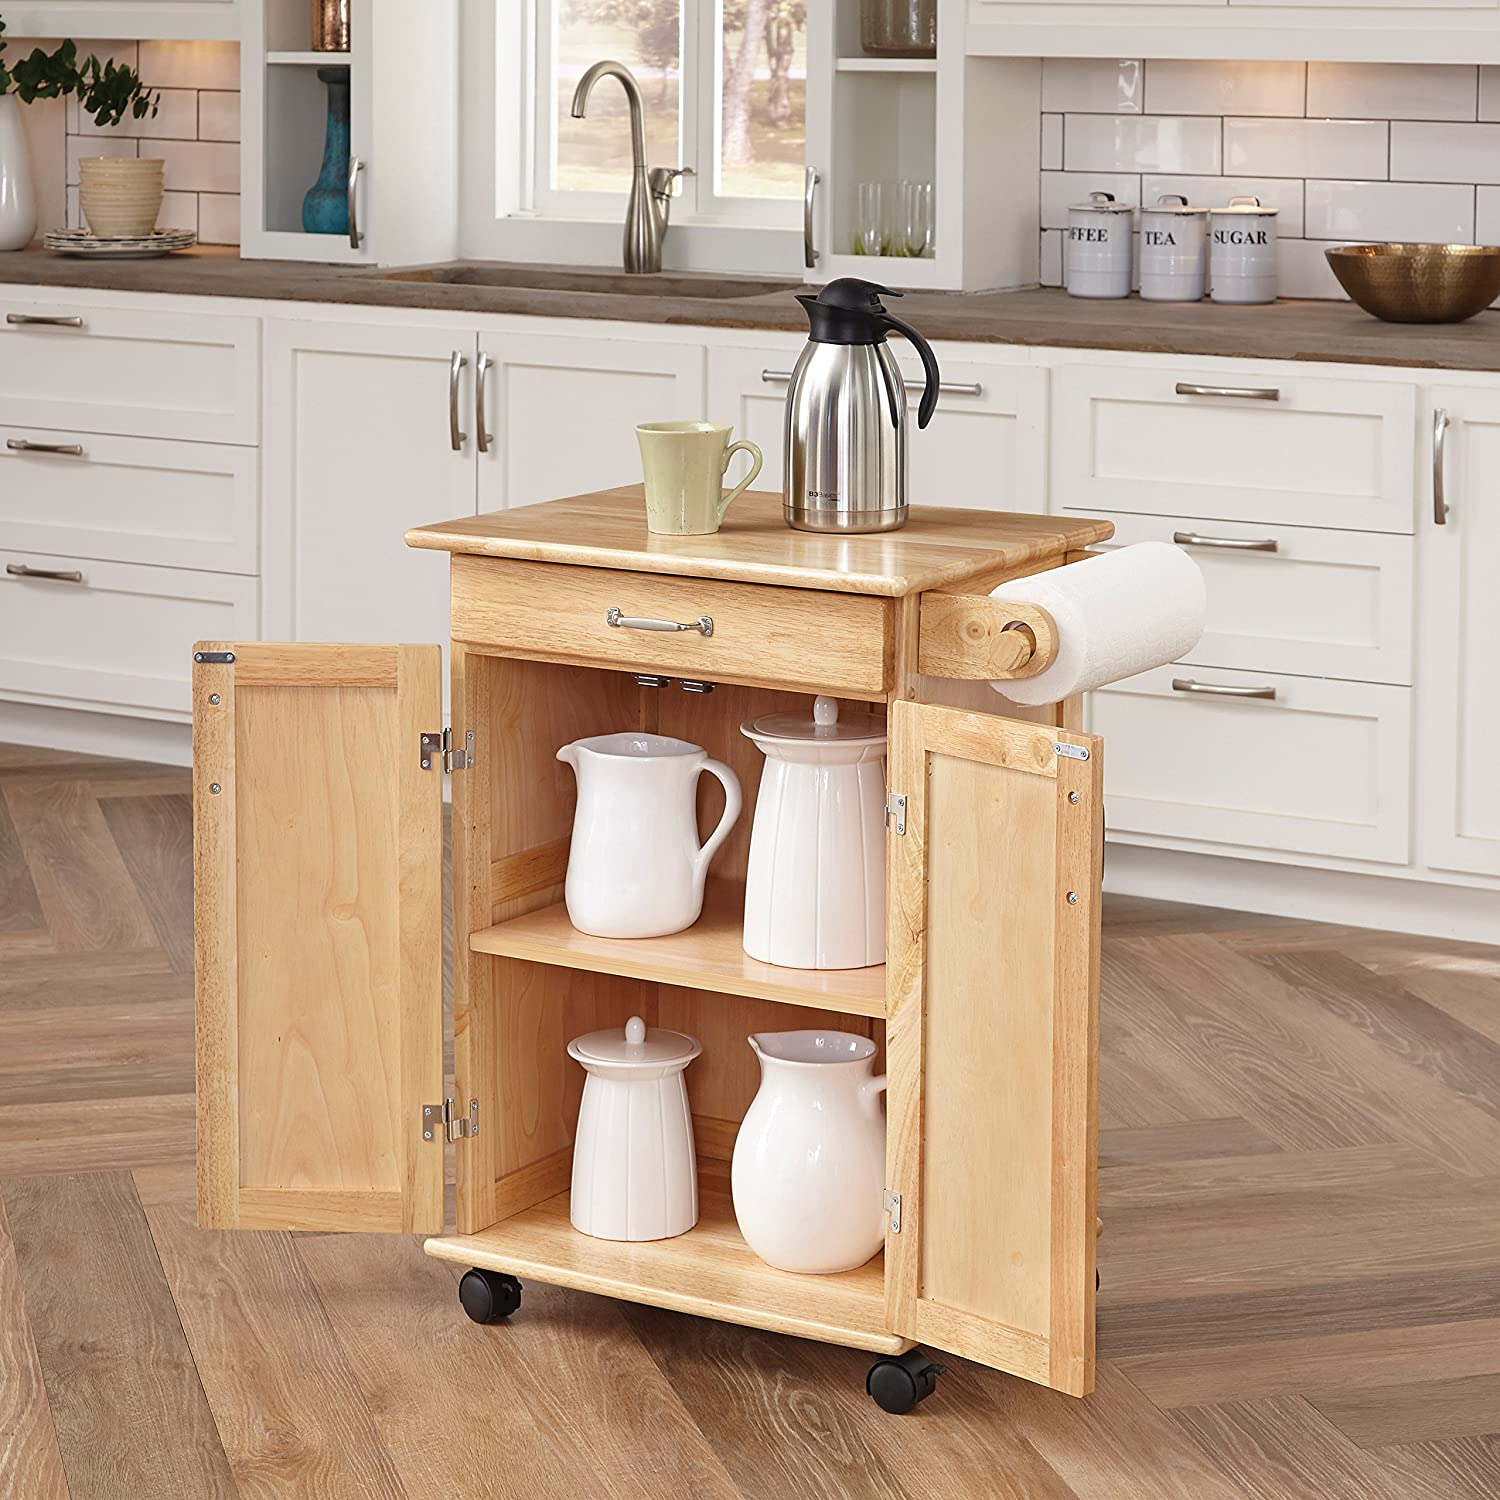 amazoncom home styles 5040 95 paneled door kitchen cart natural finish kitchen dining - Kitchen Carts